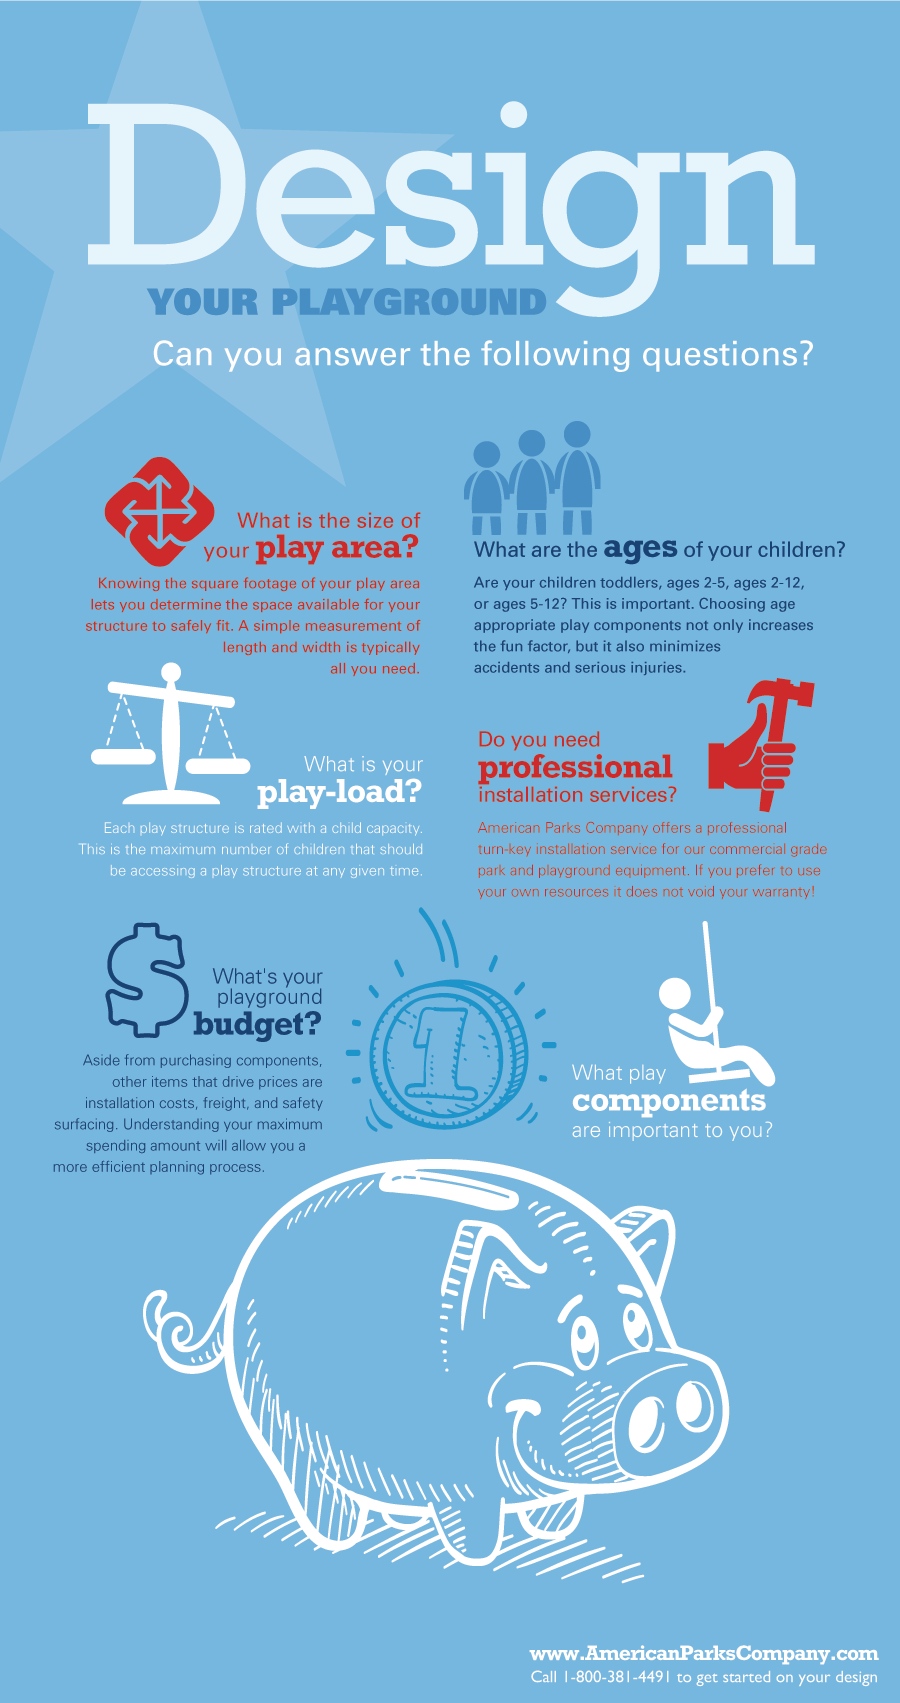 6 Questions to Help Design Your Playground